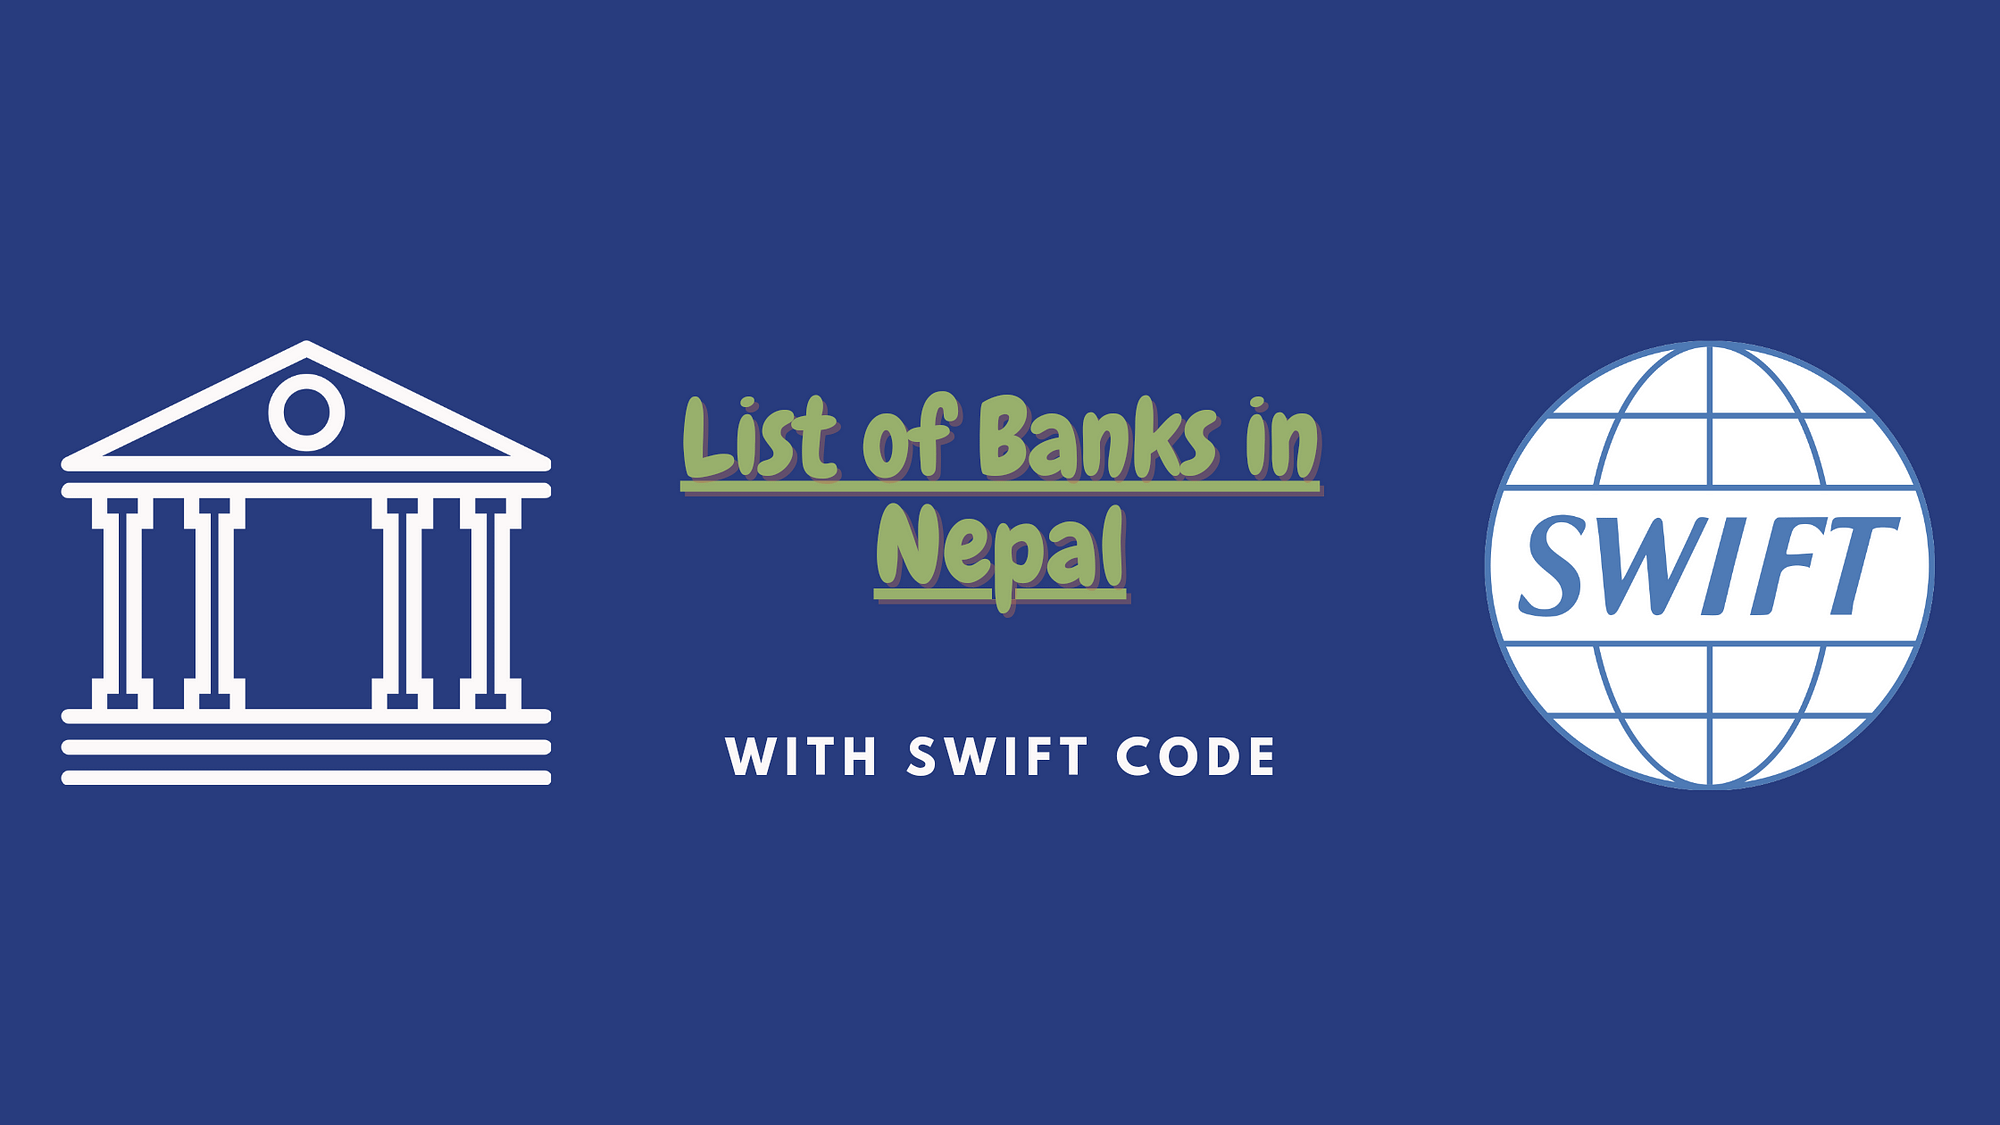 List of Banks in Nepal with their swift codes